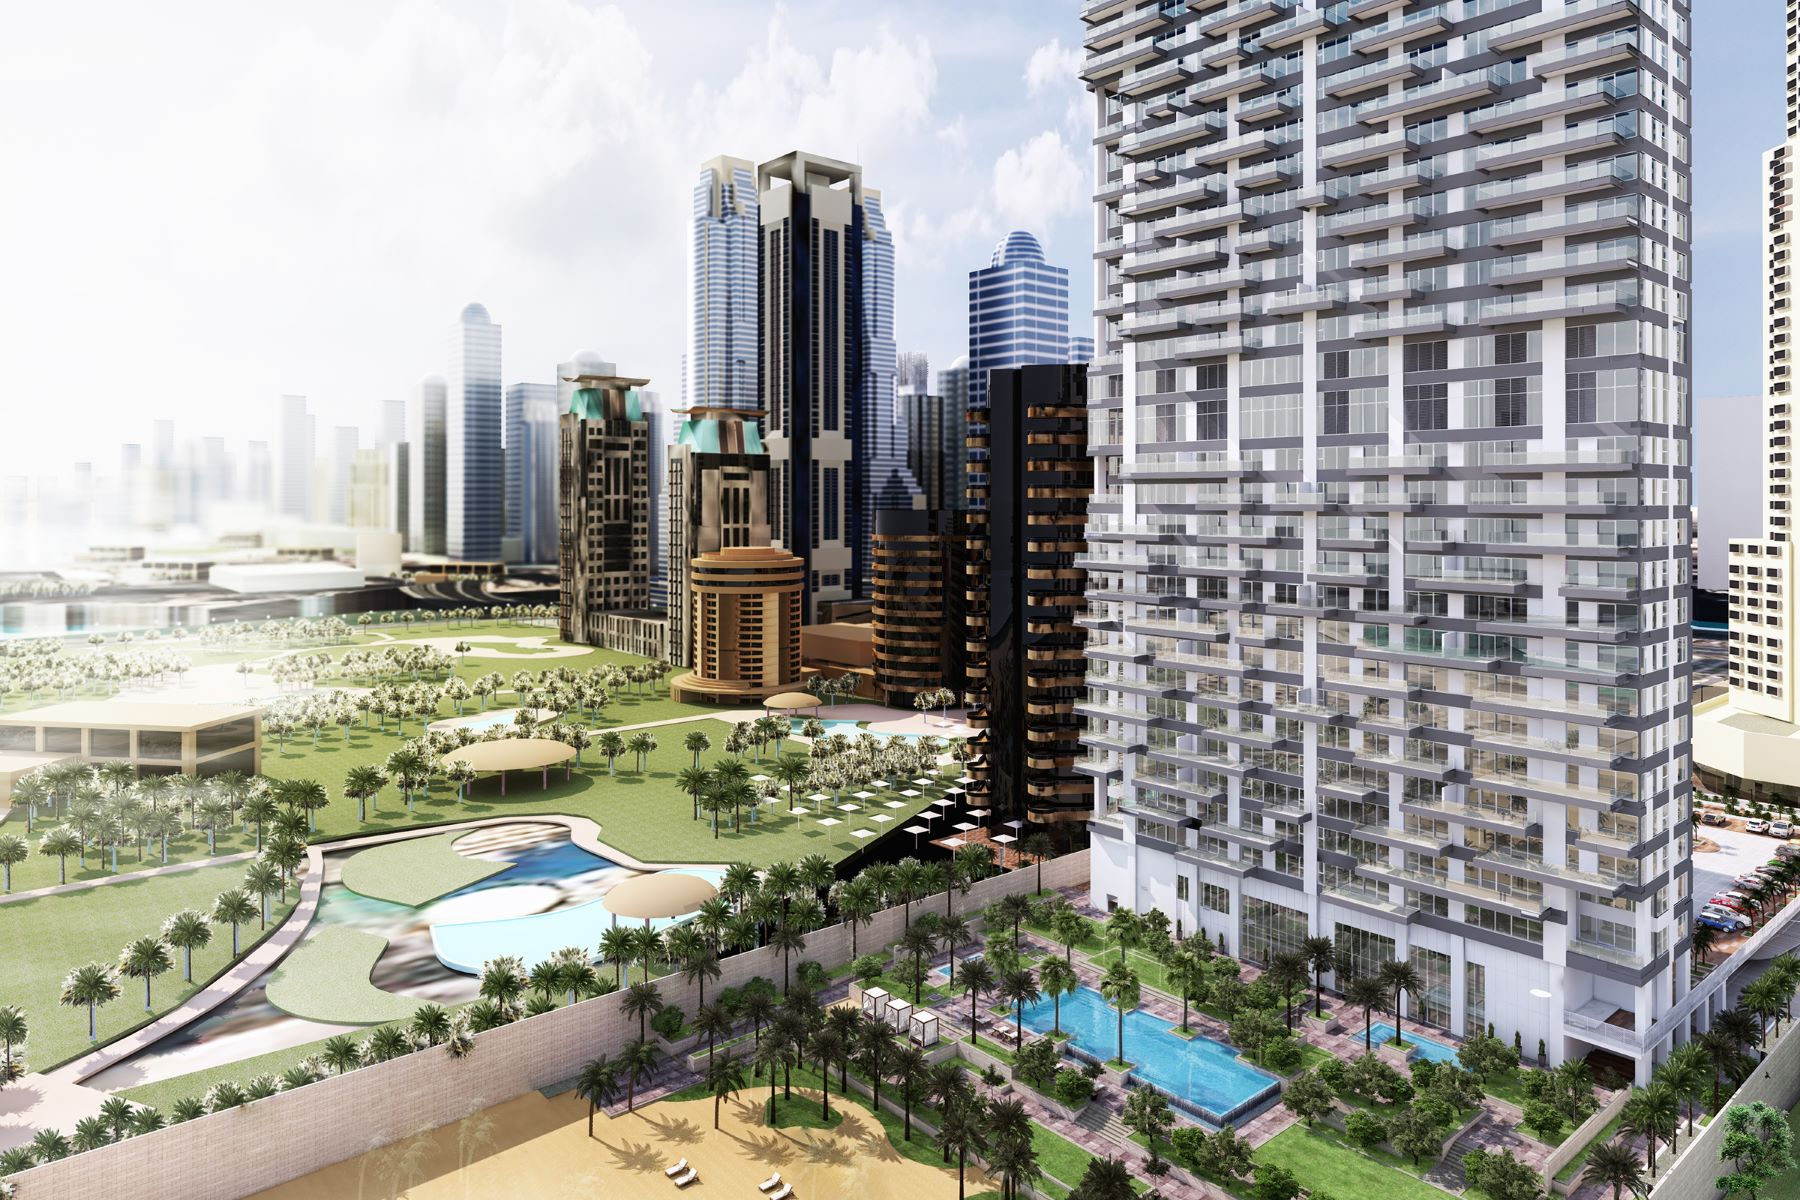 Apartment for Sale at Luxury 3 Bed Apartment with Sea View JBR 1 JBR, Dubai, 00000 United Arab Emirates